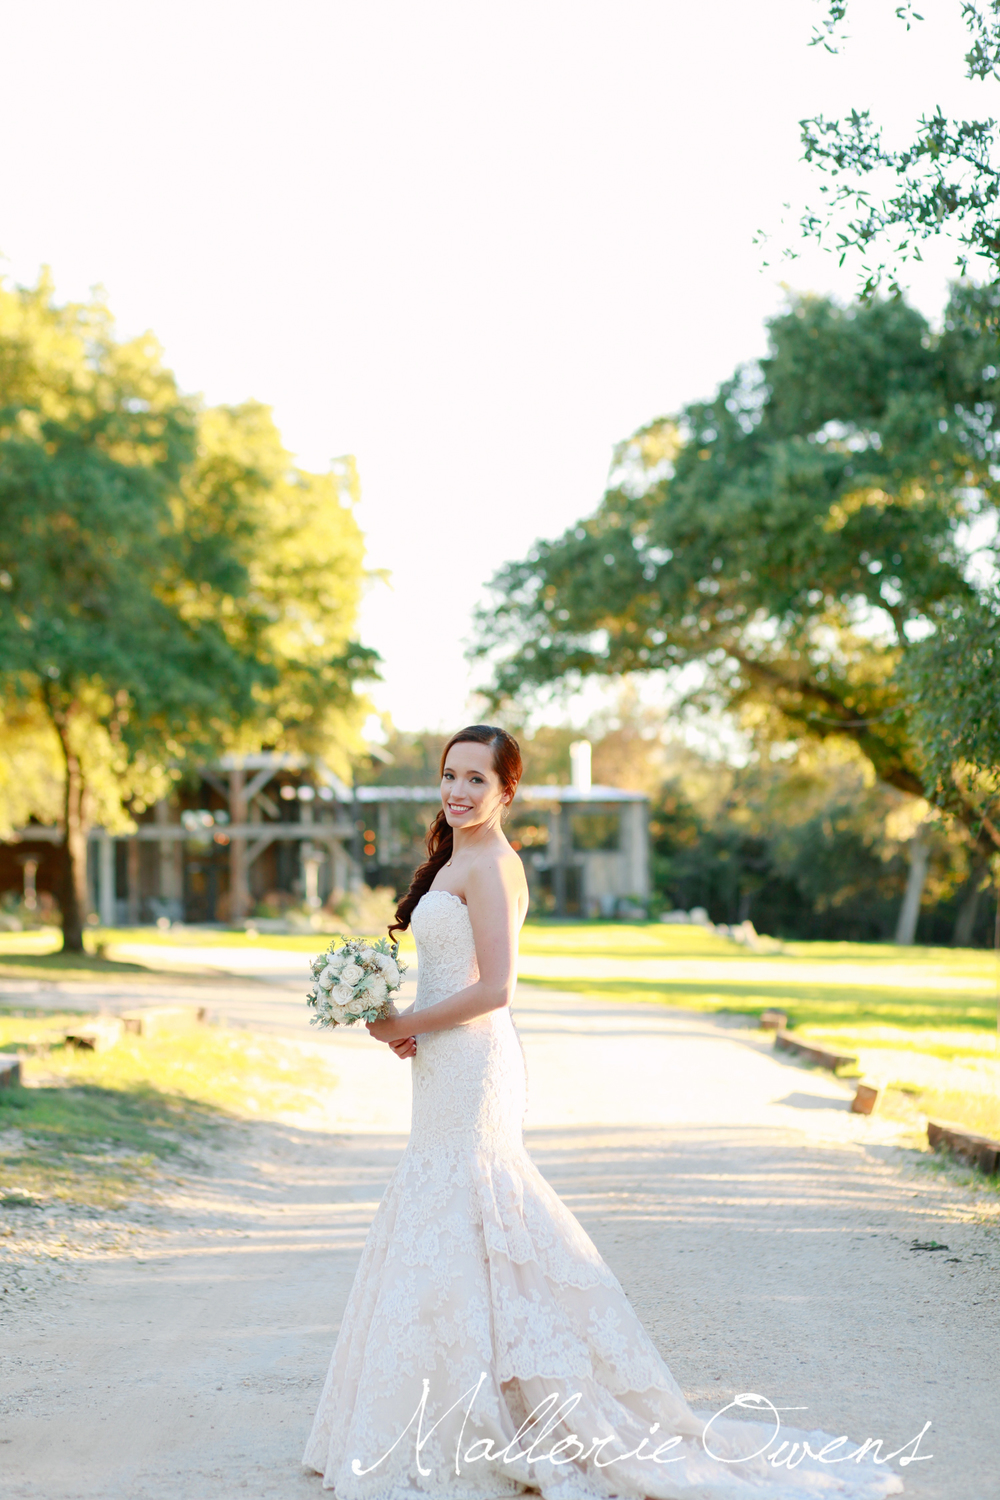 Austin Wedding Photographer, The Creek Haus | MALLORIE OWENS